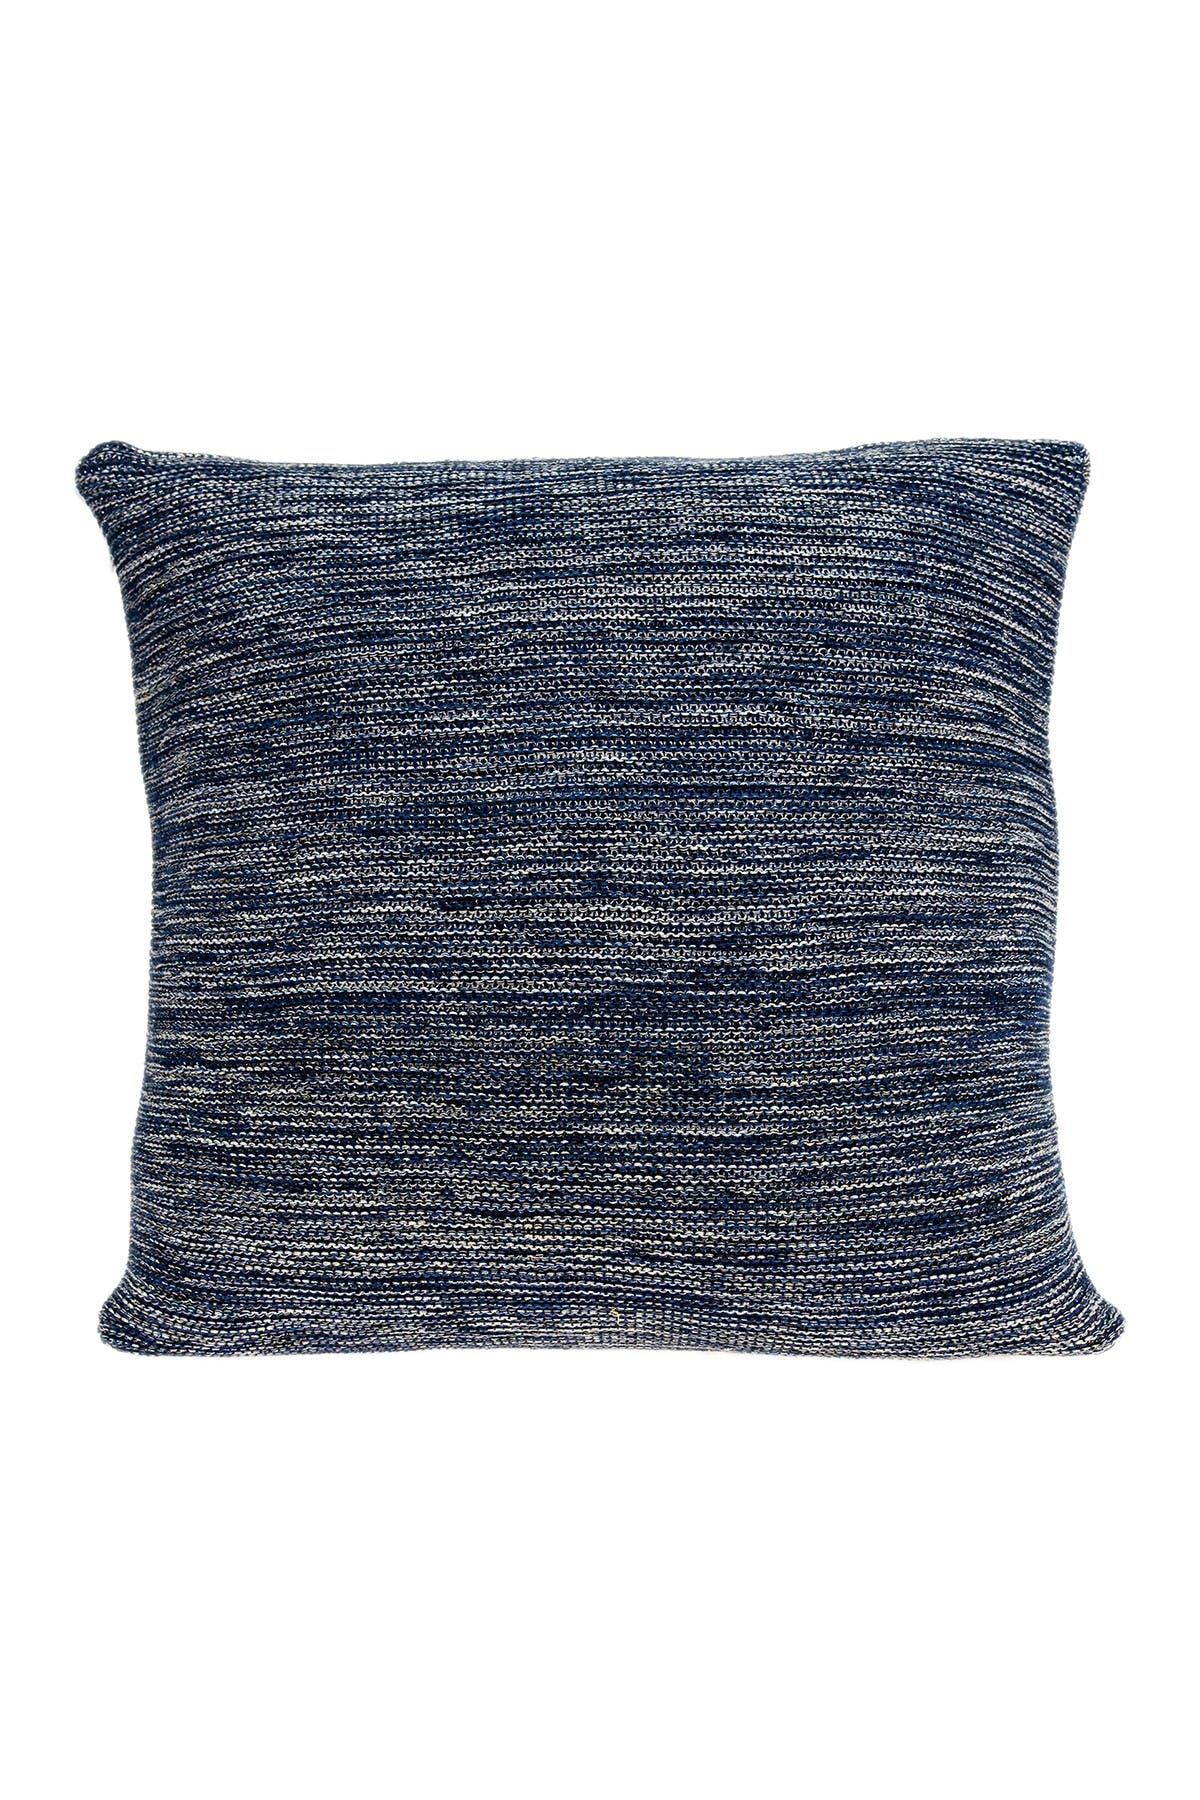 "Image of Parkland Collection Caliga Transitional Pillow - 20"" x 20"" - Blue"